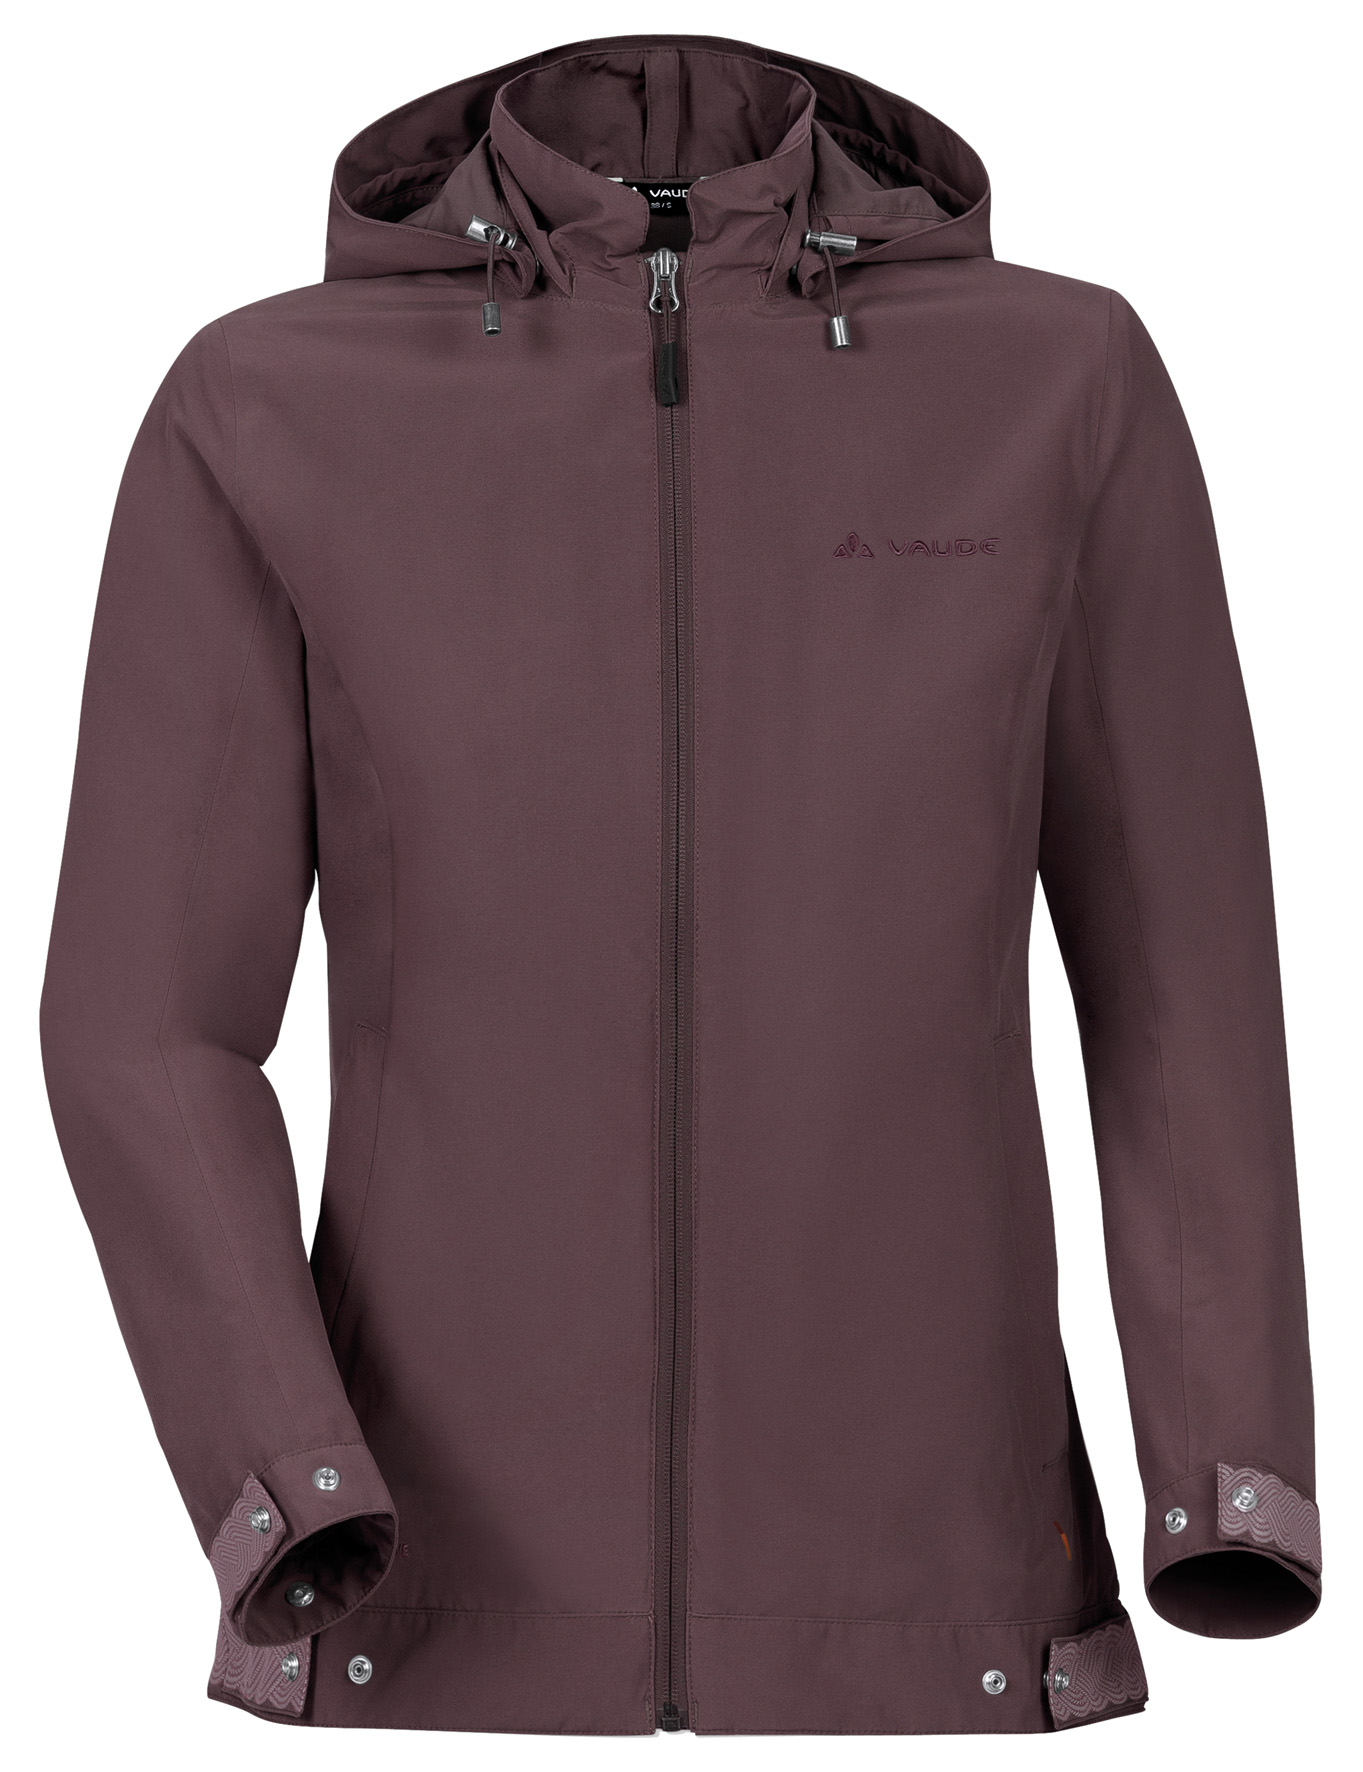 VAUDE Women´s Cyclist Jacket dark plum Größe 36 - schneider-sports